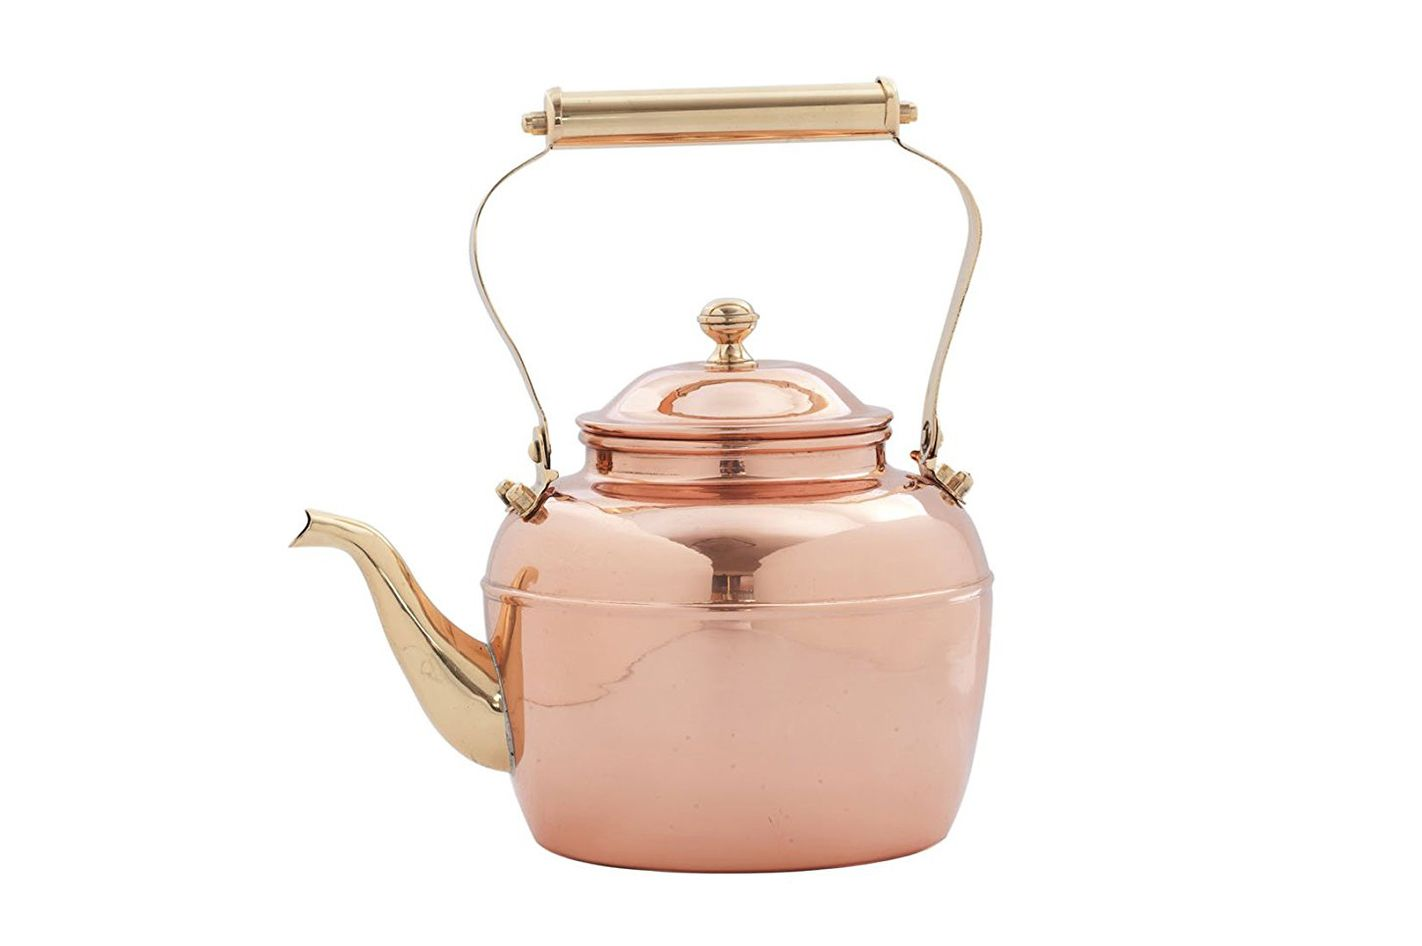 Old Dutch Solid Copper Teakettle With Brass Handle